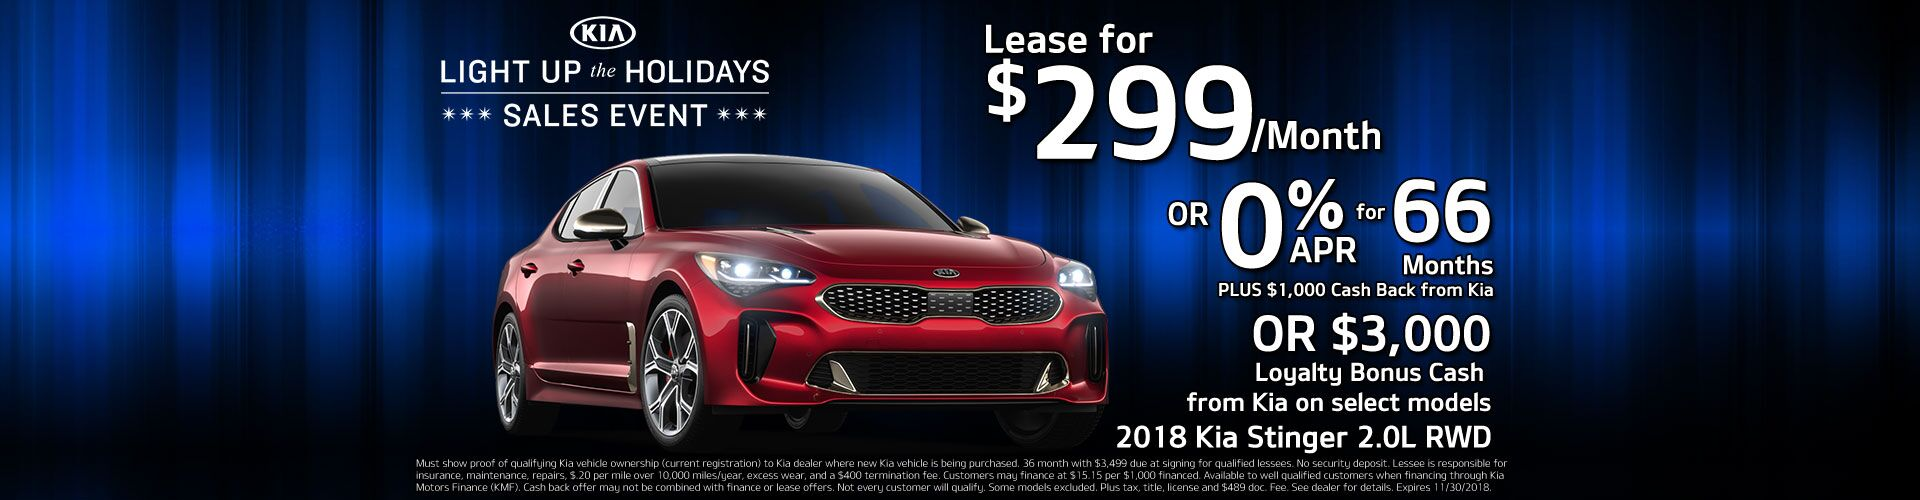 2018 Kia Stinger Lease